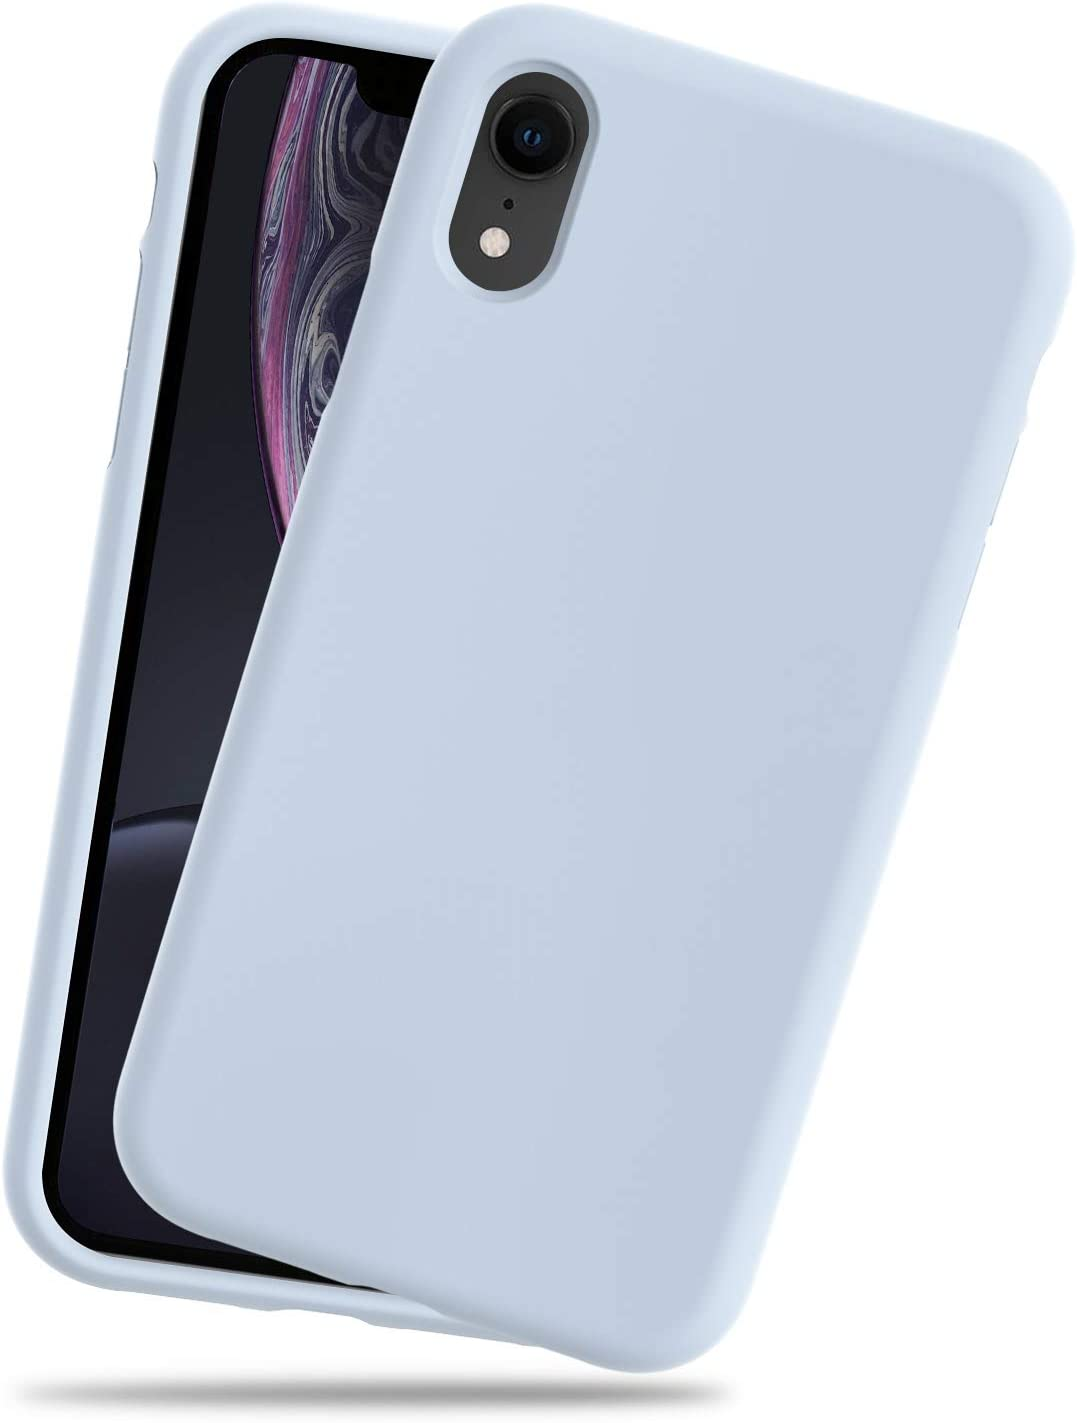 IMPACTSTRONG iPhone XR Case, Silicone Heavy Duty Liquid Gel Shockproof Case with Soft Microfiber Cloth Cushion Compatible with iPhone XR (6.1 inch) - Light Blue